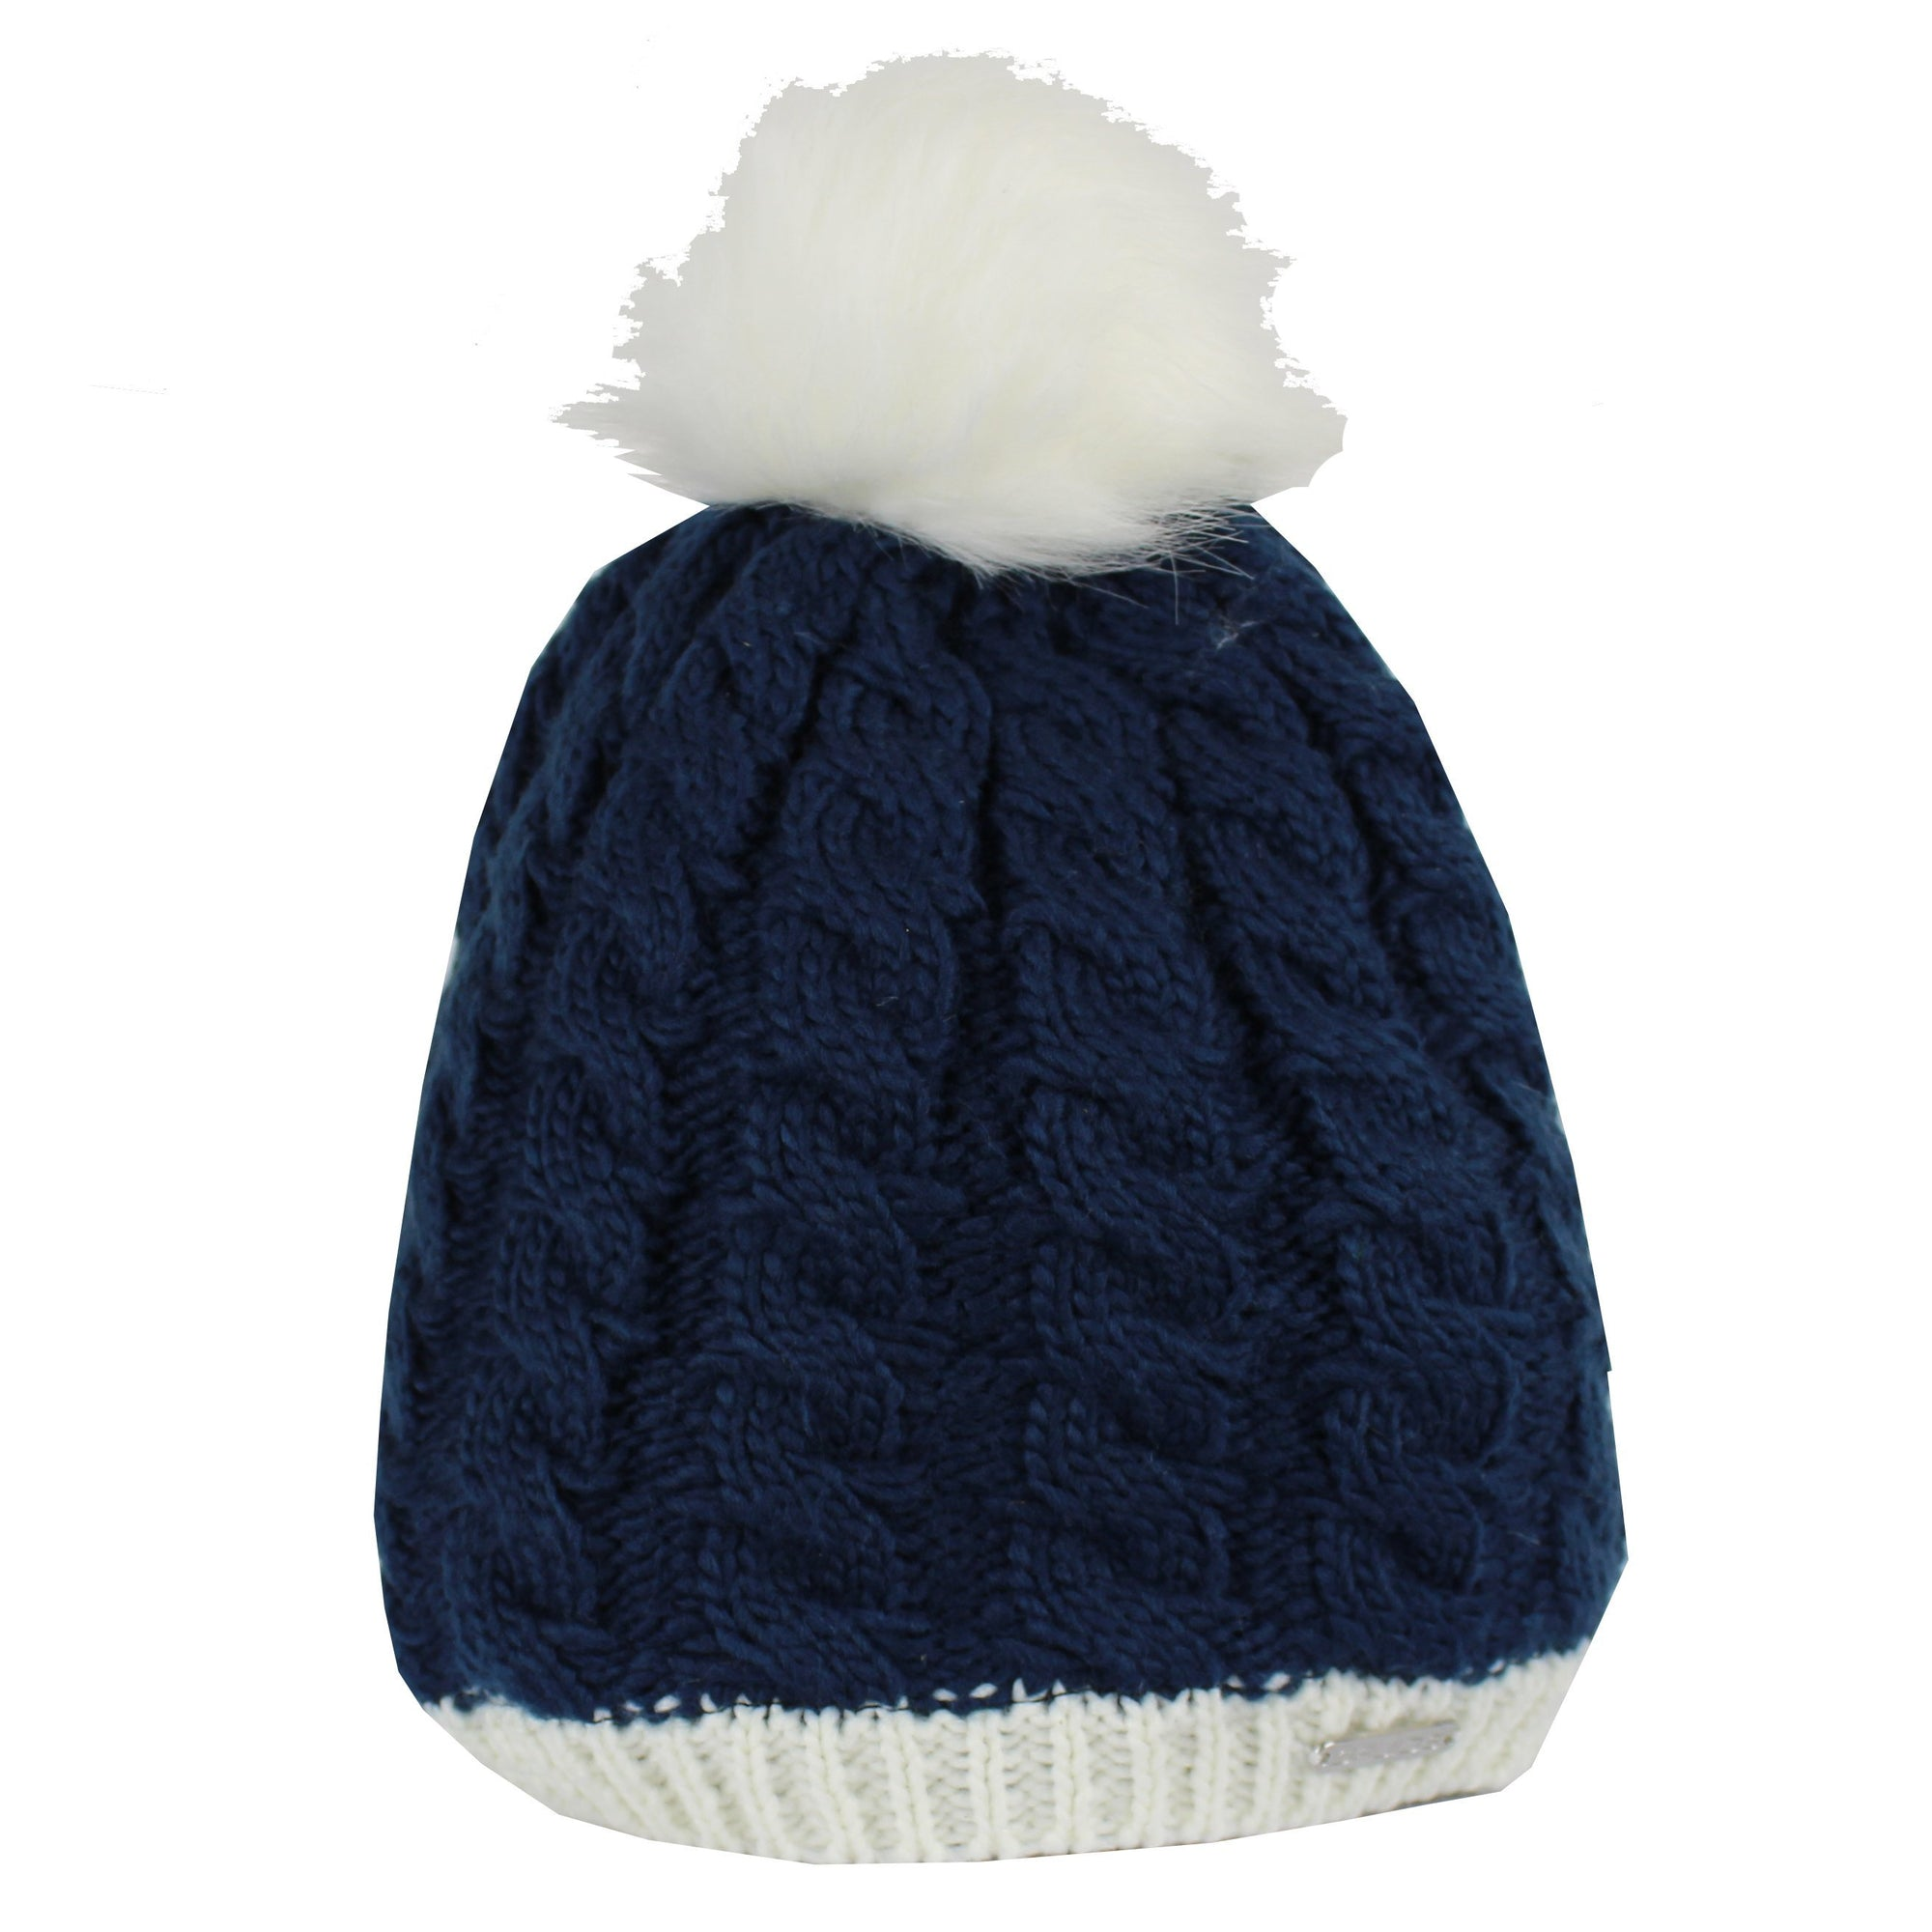 Druids Golf - Ladies Two Tone Beanie (Navy)